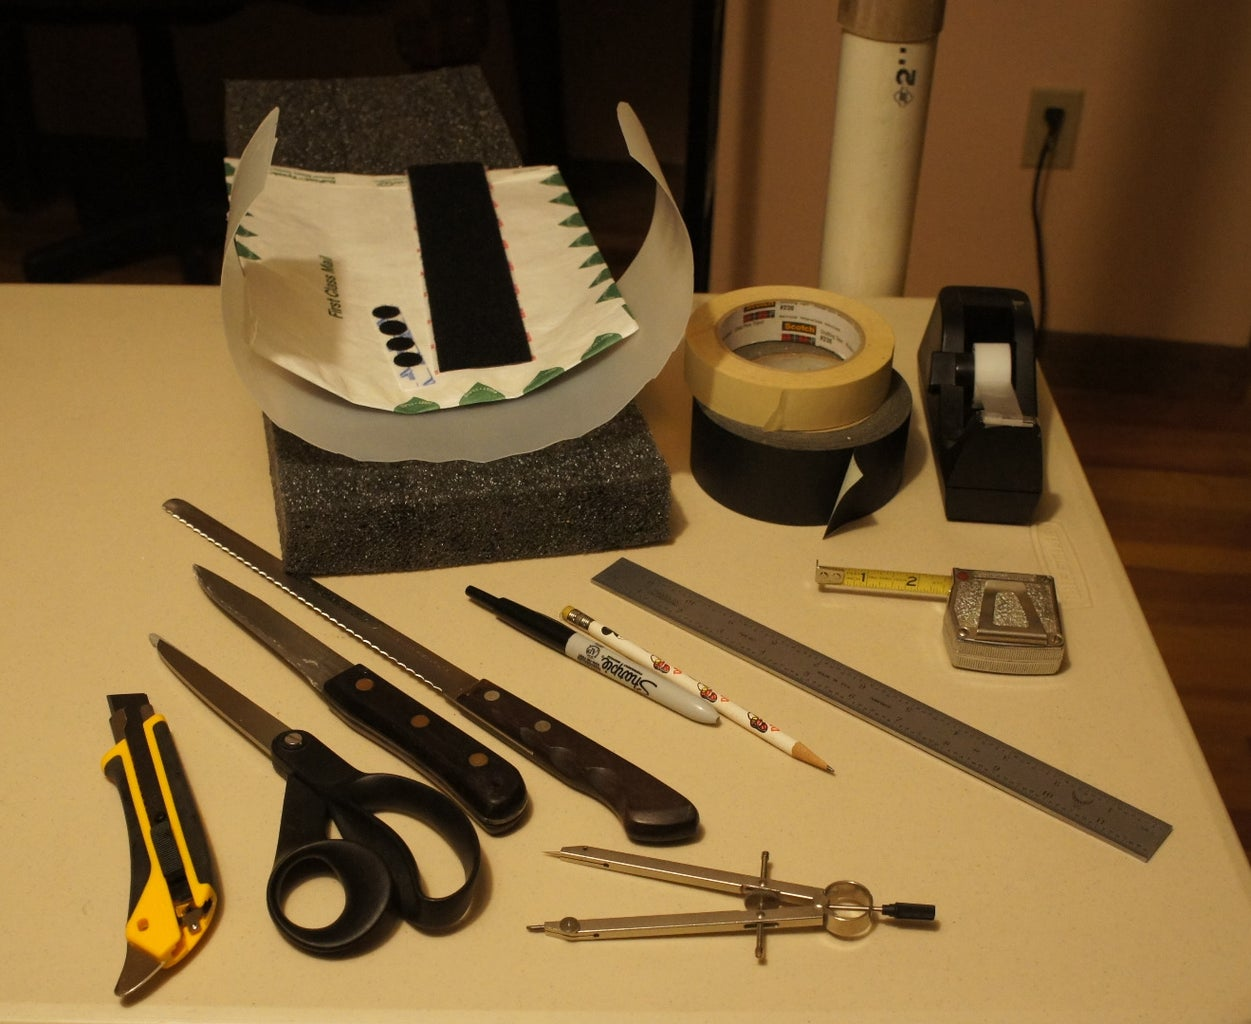 Assemble Supplies and Tools